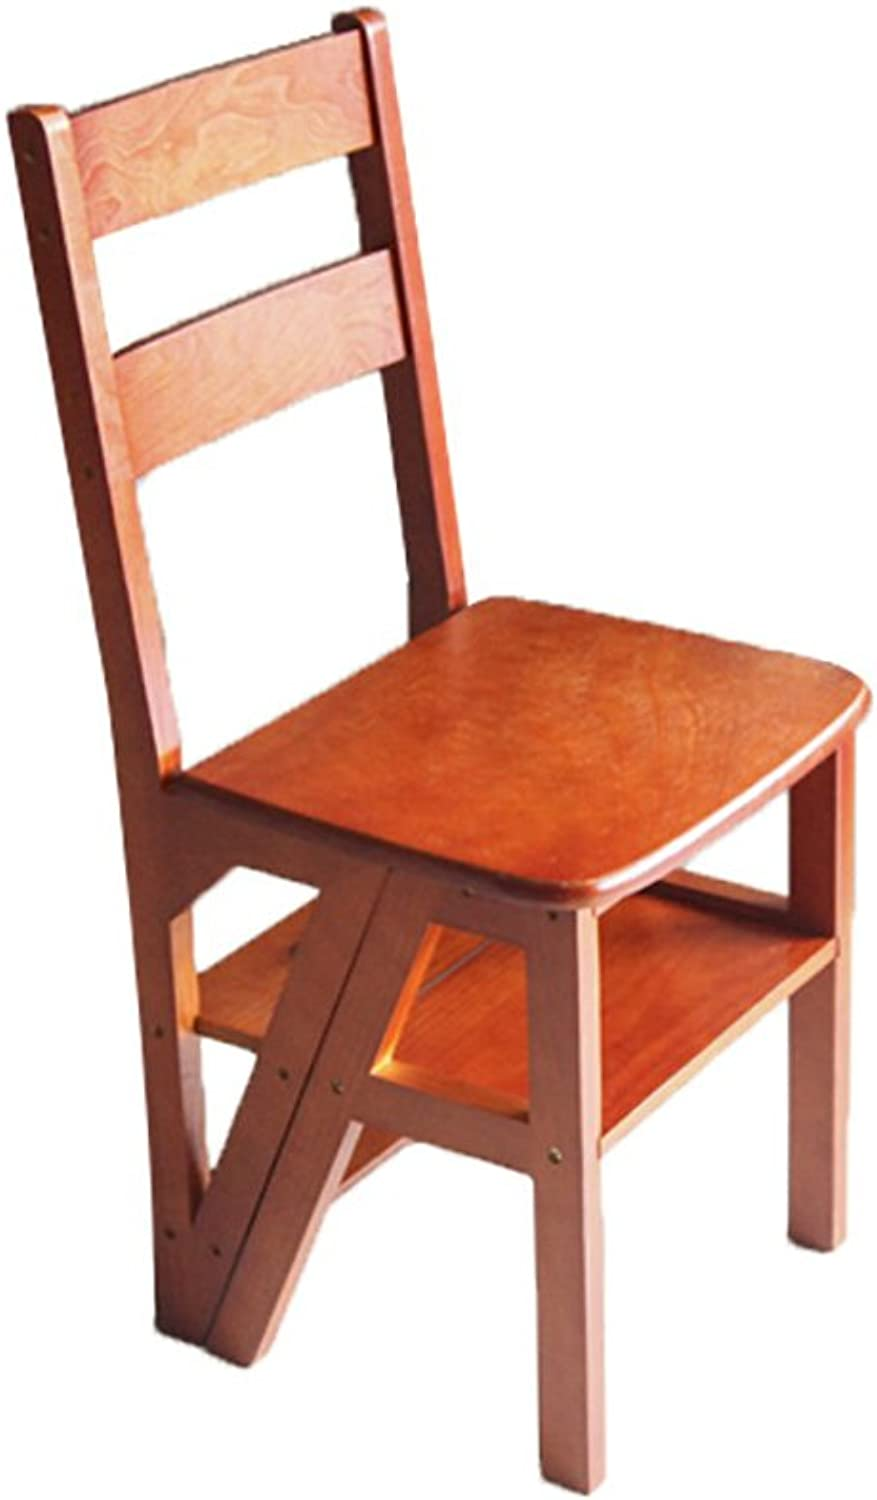 Staircase Stool TH Ladder Stools 4 Tier Step,Ladder Stool, Fold Solid Wood,Indoor Dual Use Step Stool, Multifunction, It Can Move Step Stool (color   Light walnut)